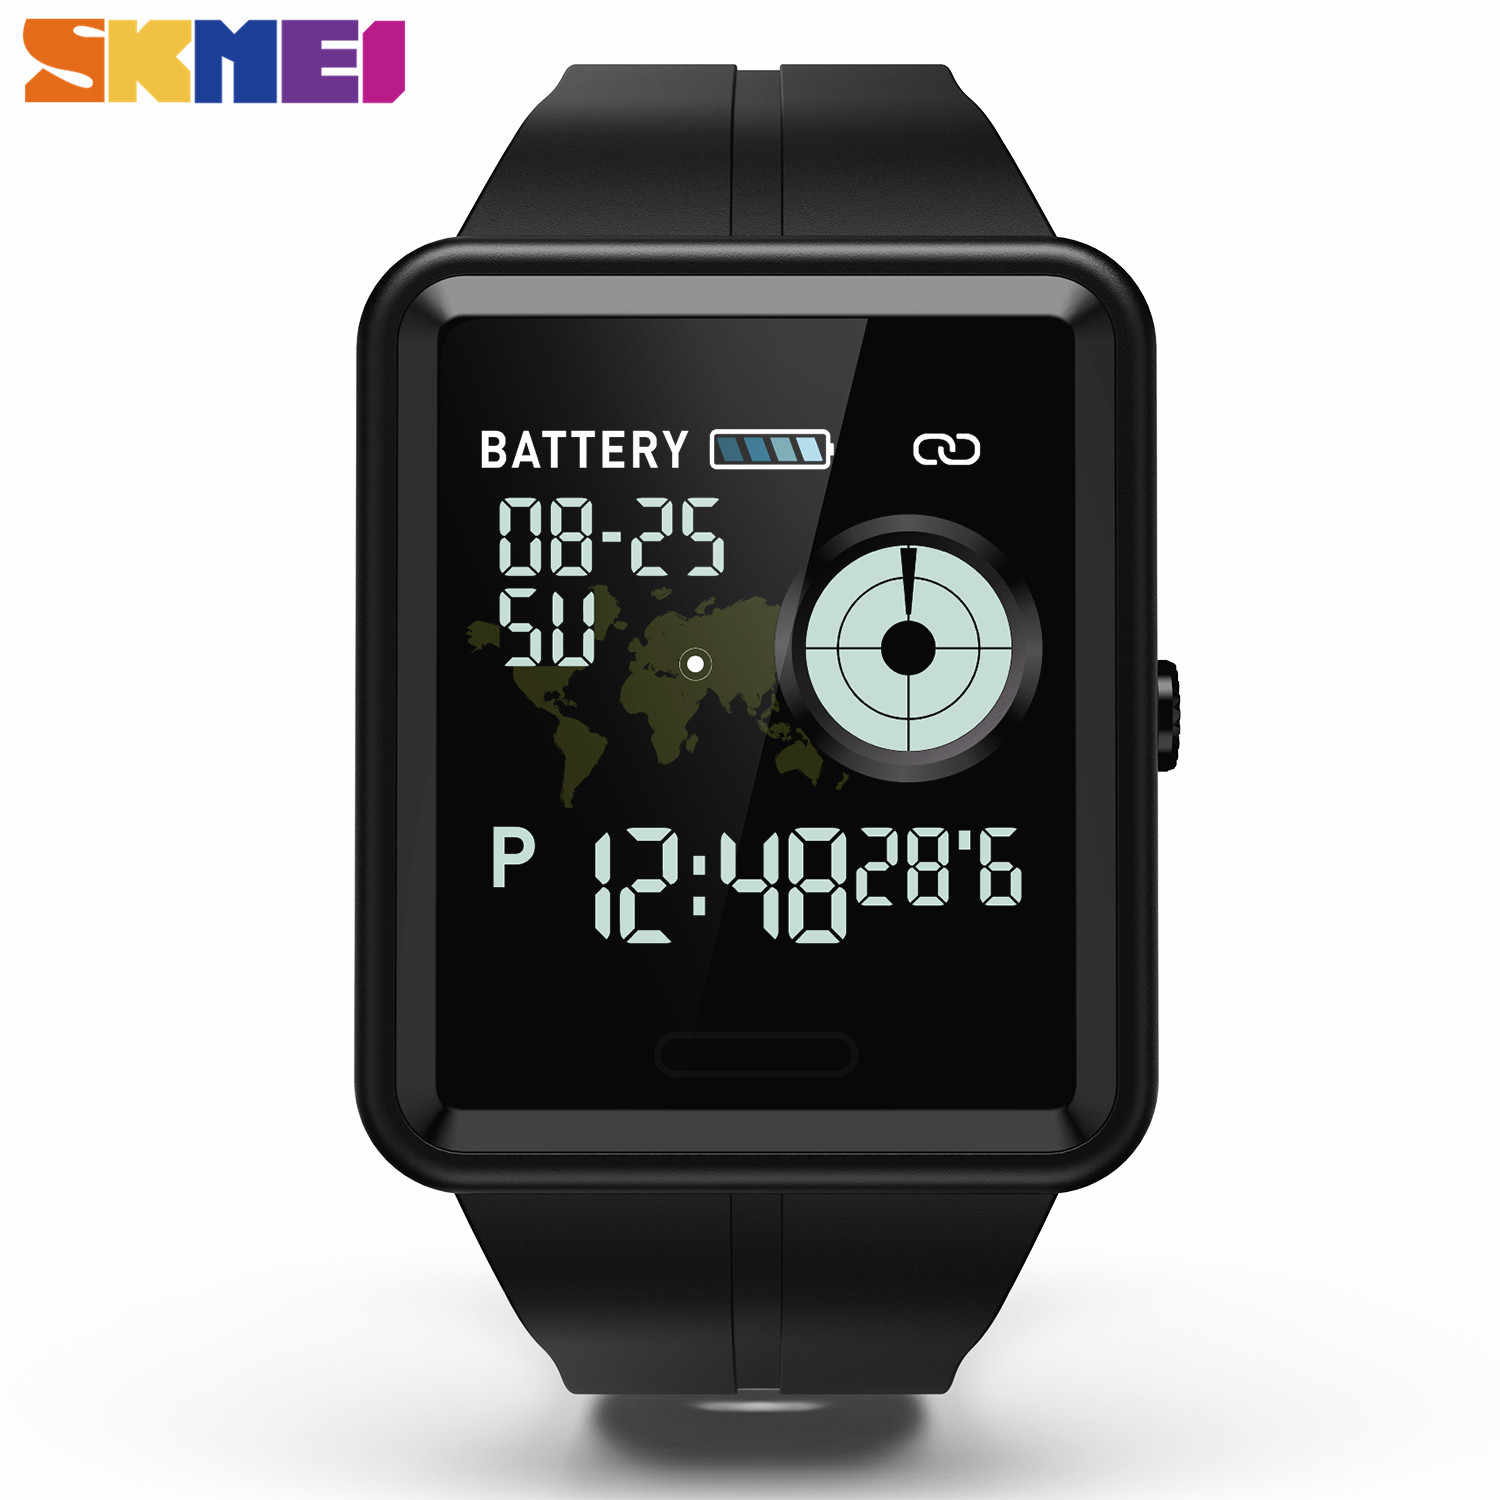 SKMEI Smart Sport Watch Touch Screen Call Reminder Watch Heart Rate Blood Pressure Sleep Monitoring Waterproof Wristwatche W37